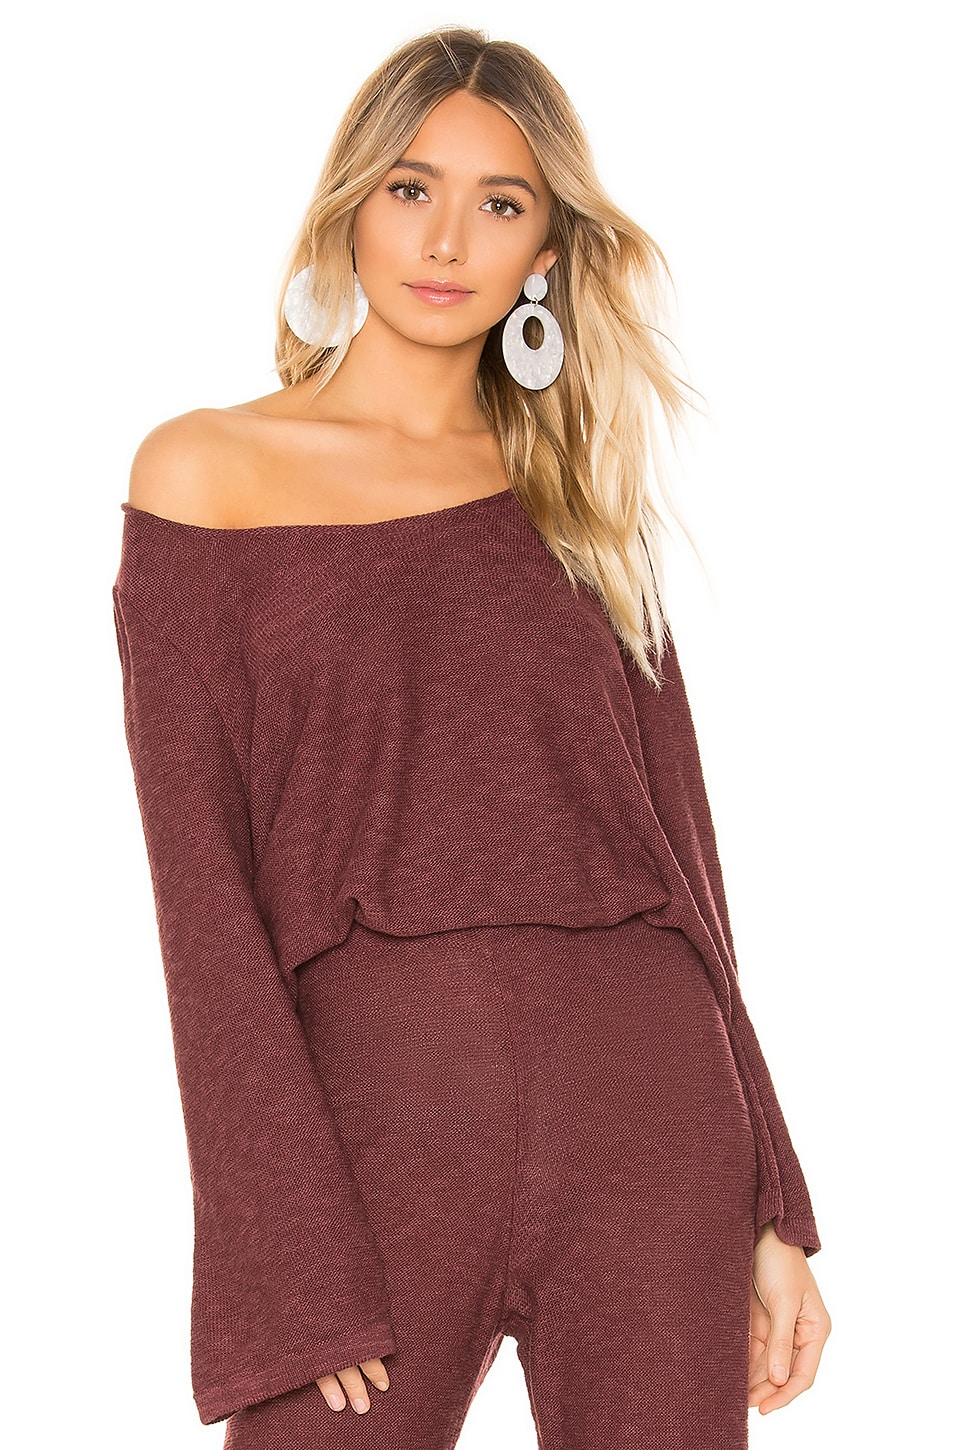 ZULU & ZEPHYR X Revolve Lounge Top in Burgundy